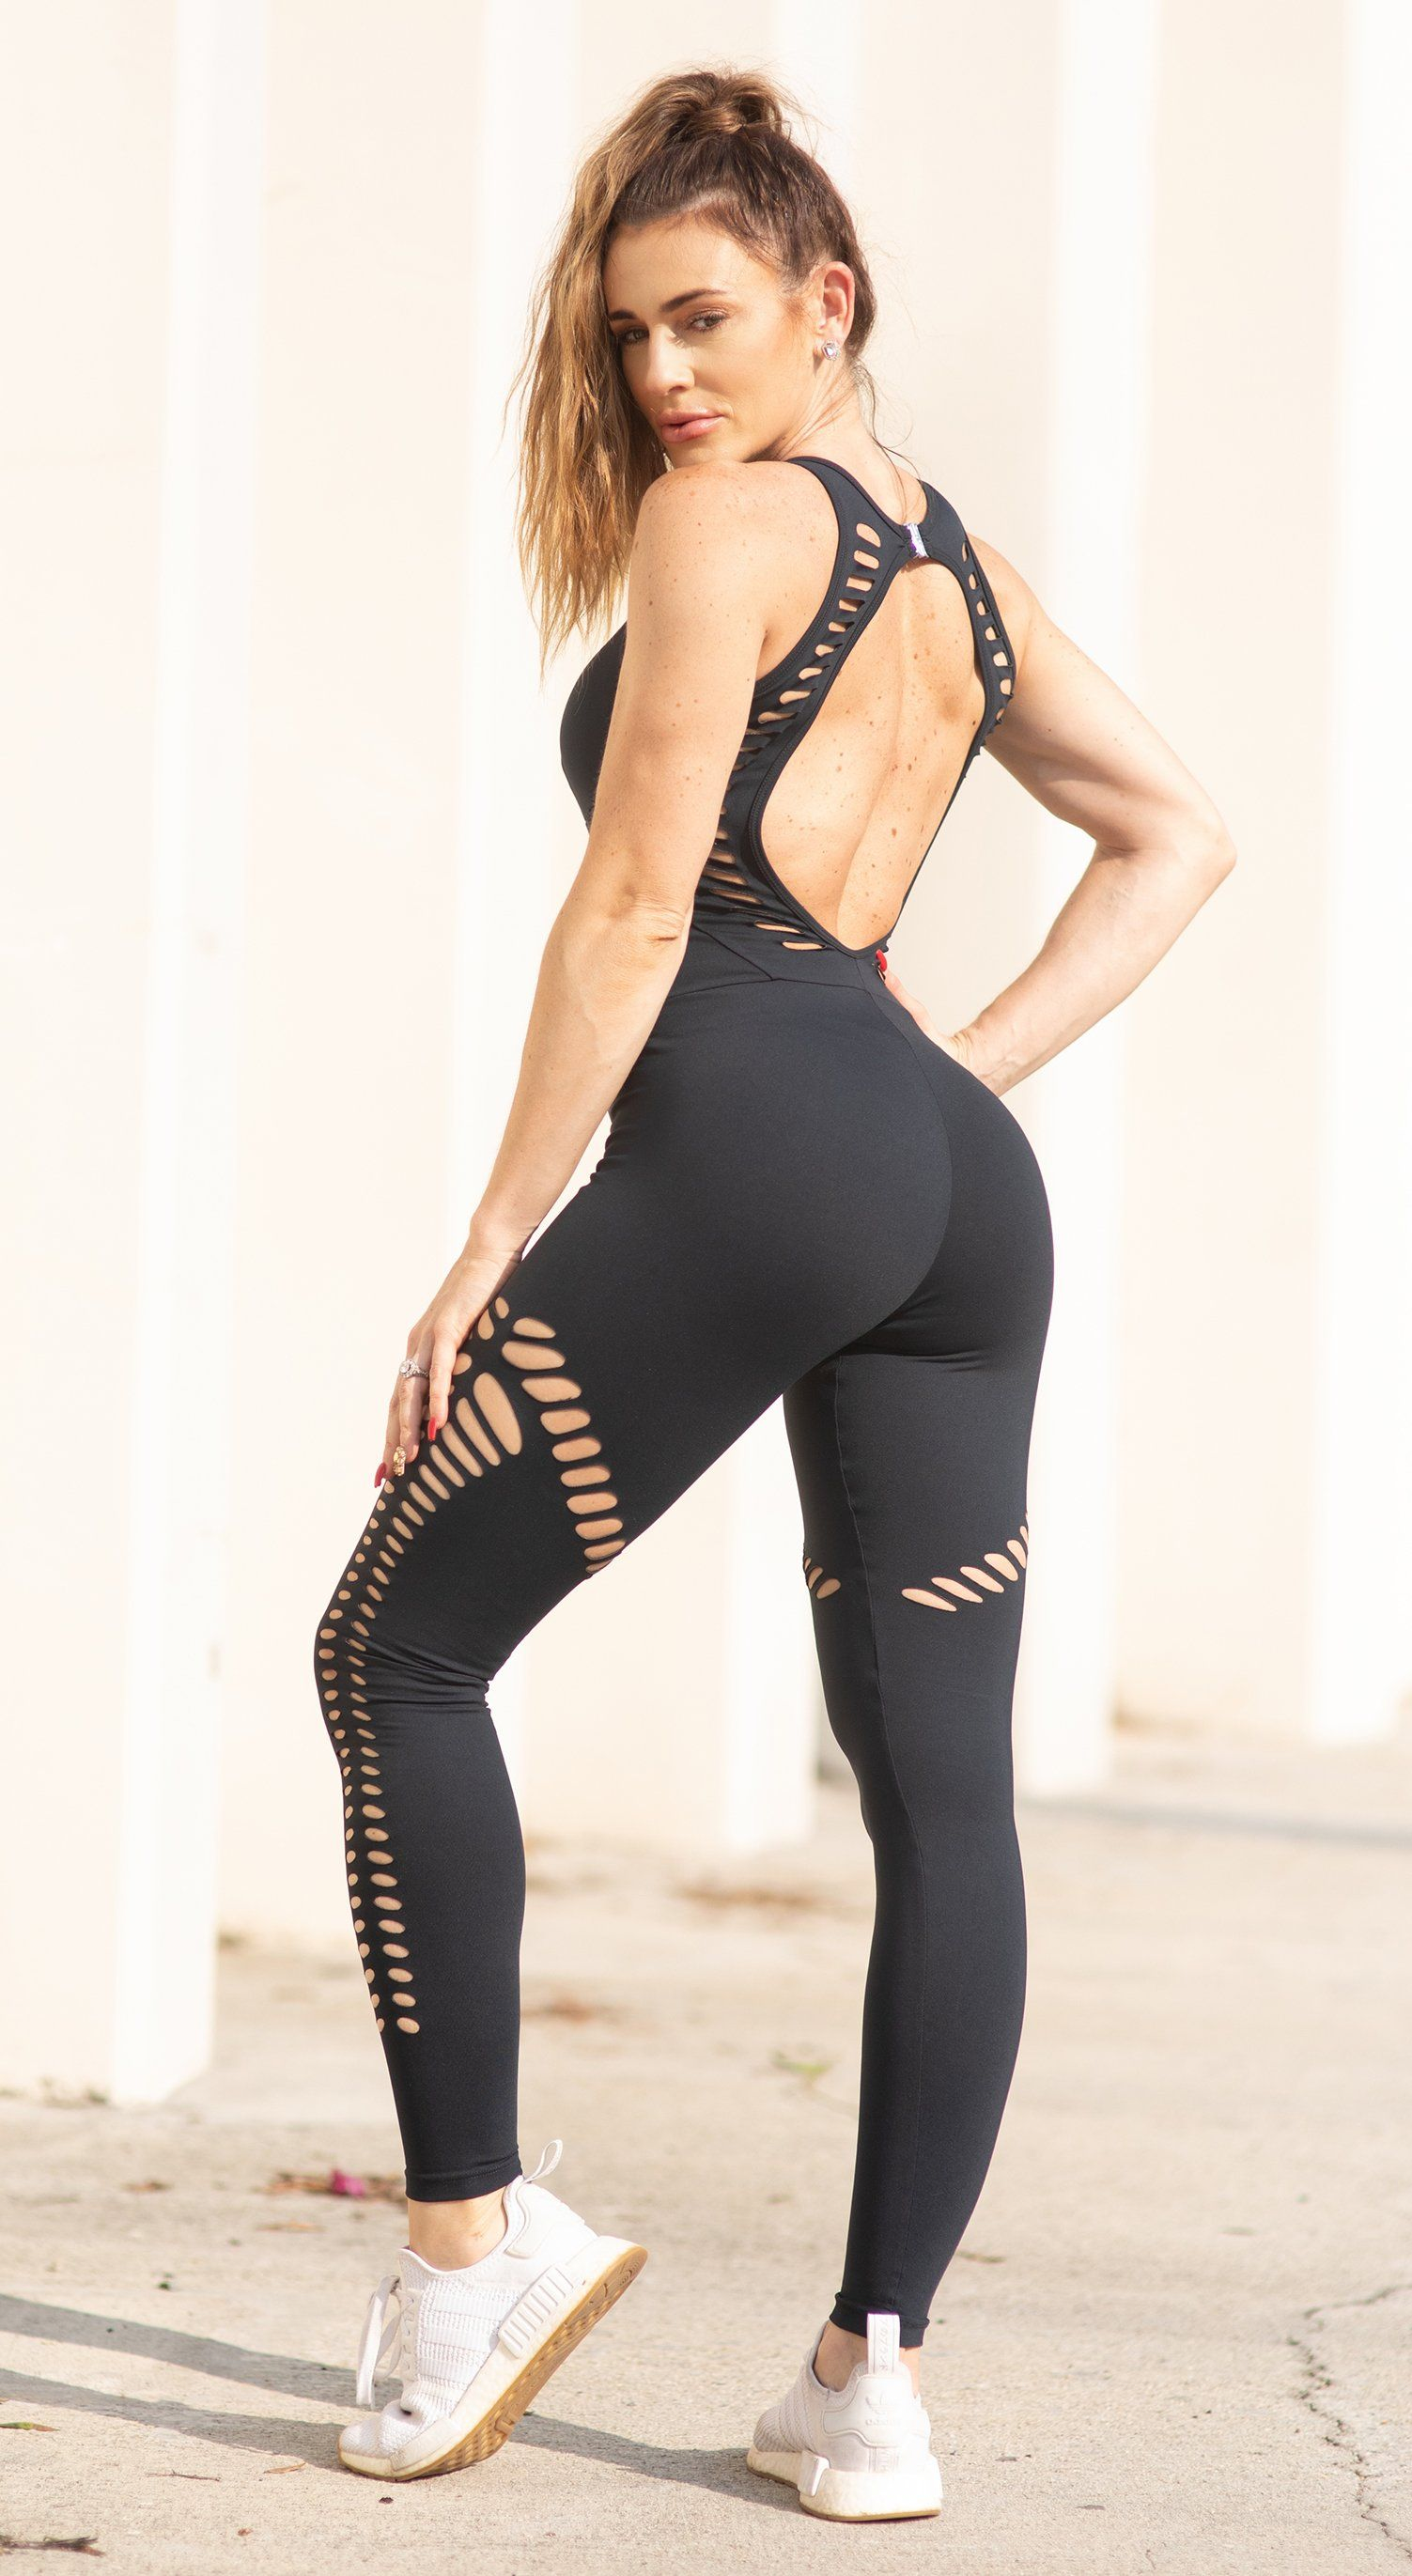 Brazilian Workout Jumpsuit - Malibu Fitness NZ Laser Black